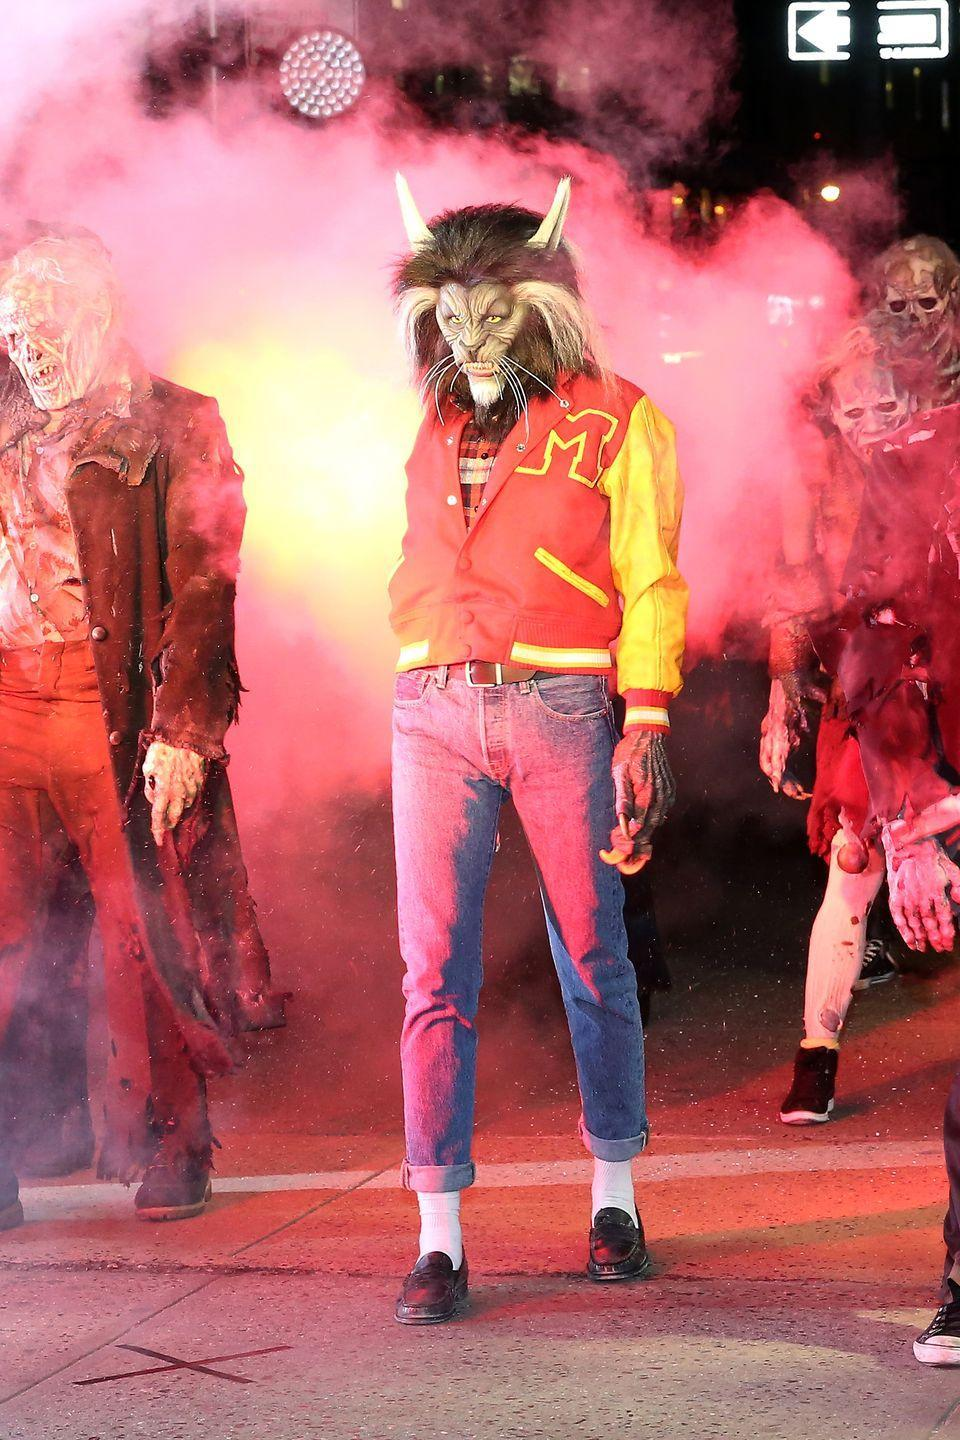 """<p>You can't celebrate Halloween without busting out a """"Thriller"""" dance. She brought <a href=""""https://www.goodhousekeeping.com/holidays/halloween-ideas/g4544/80s-costumes-halloween/"""" rel=""""nofollow noopener"""" target=""""_blank"""" data-ylk=""""slk:the 1982 music video"""" class=""""link rapid-noclick-resp"""">the 1982 music video</a> to the streets of New York City in this nearly-identical Michael Jackson outfit.</p>"""